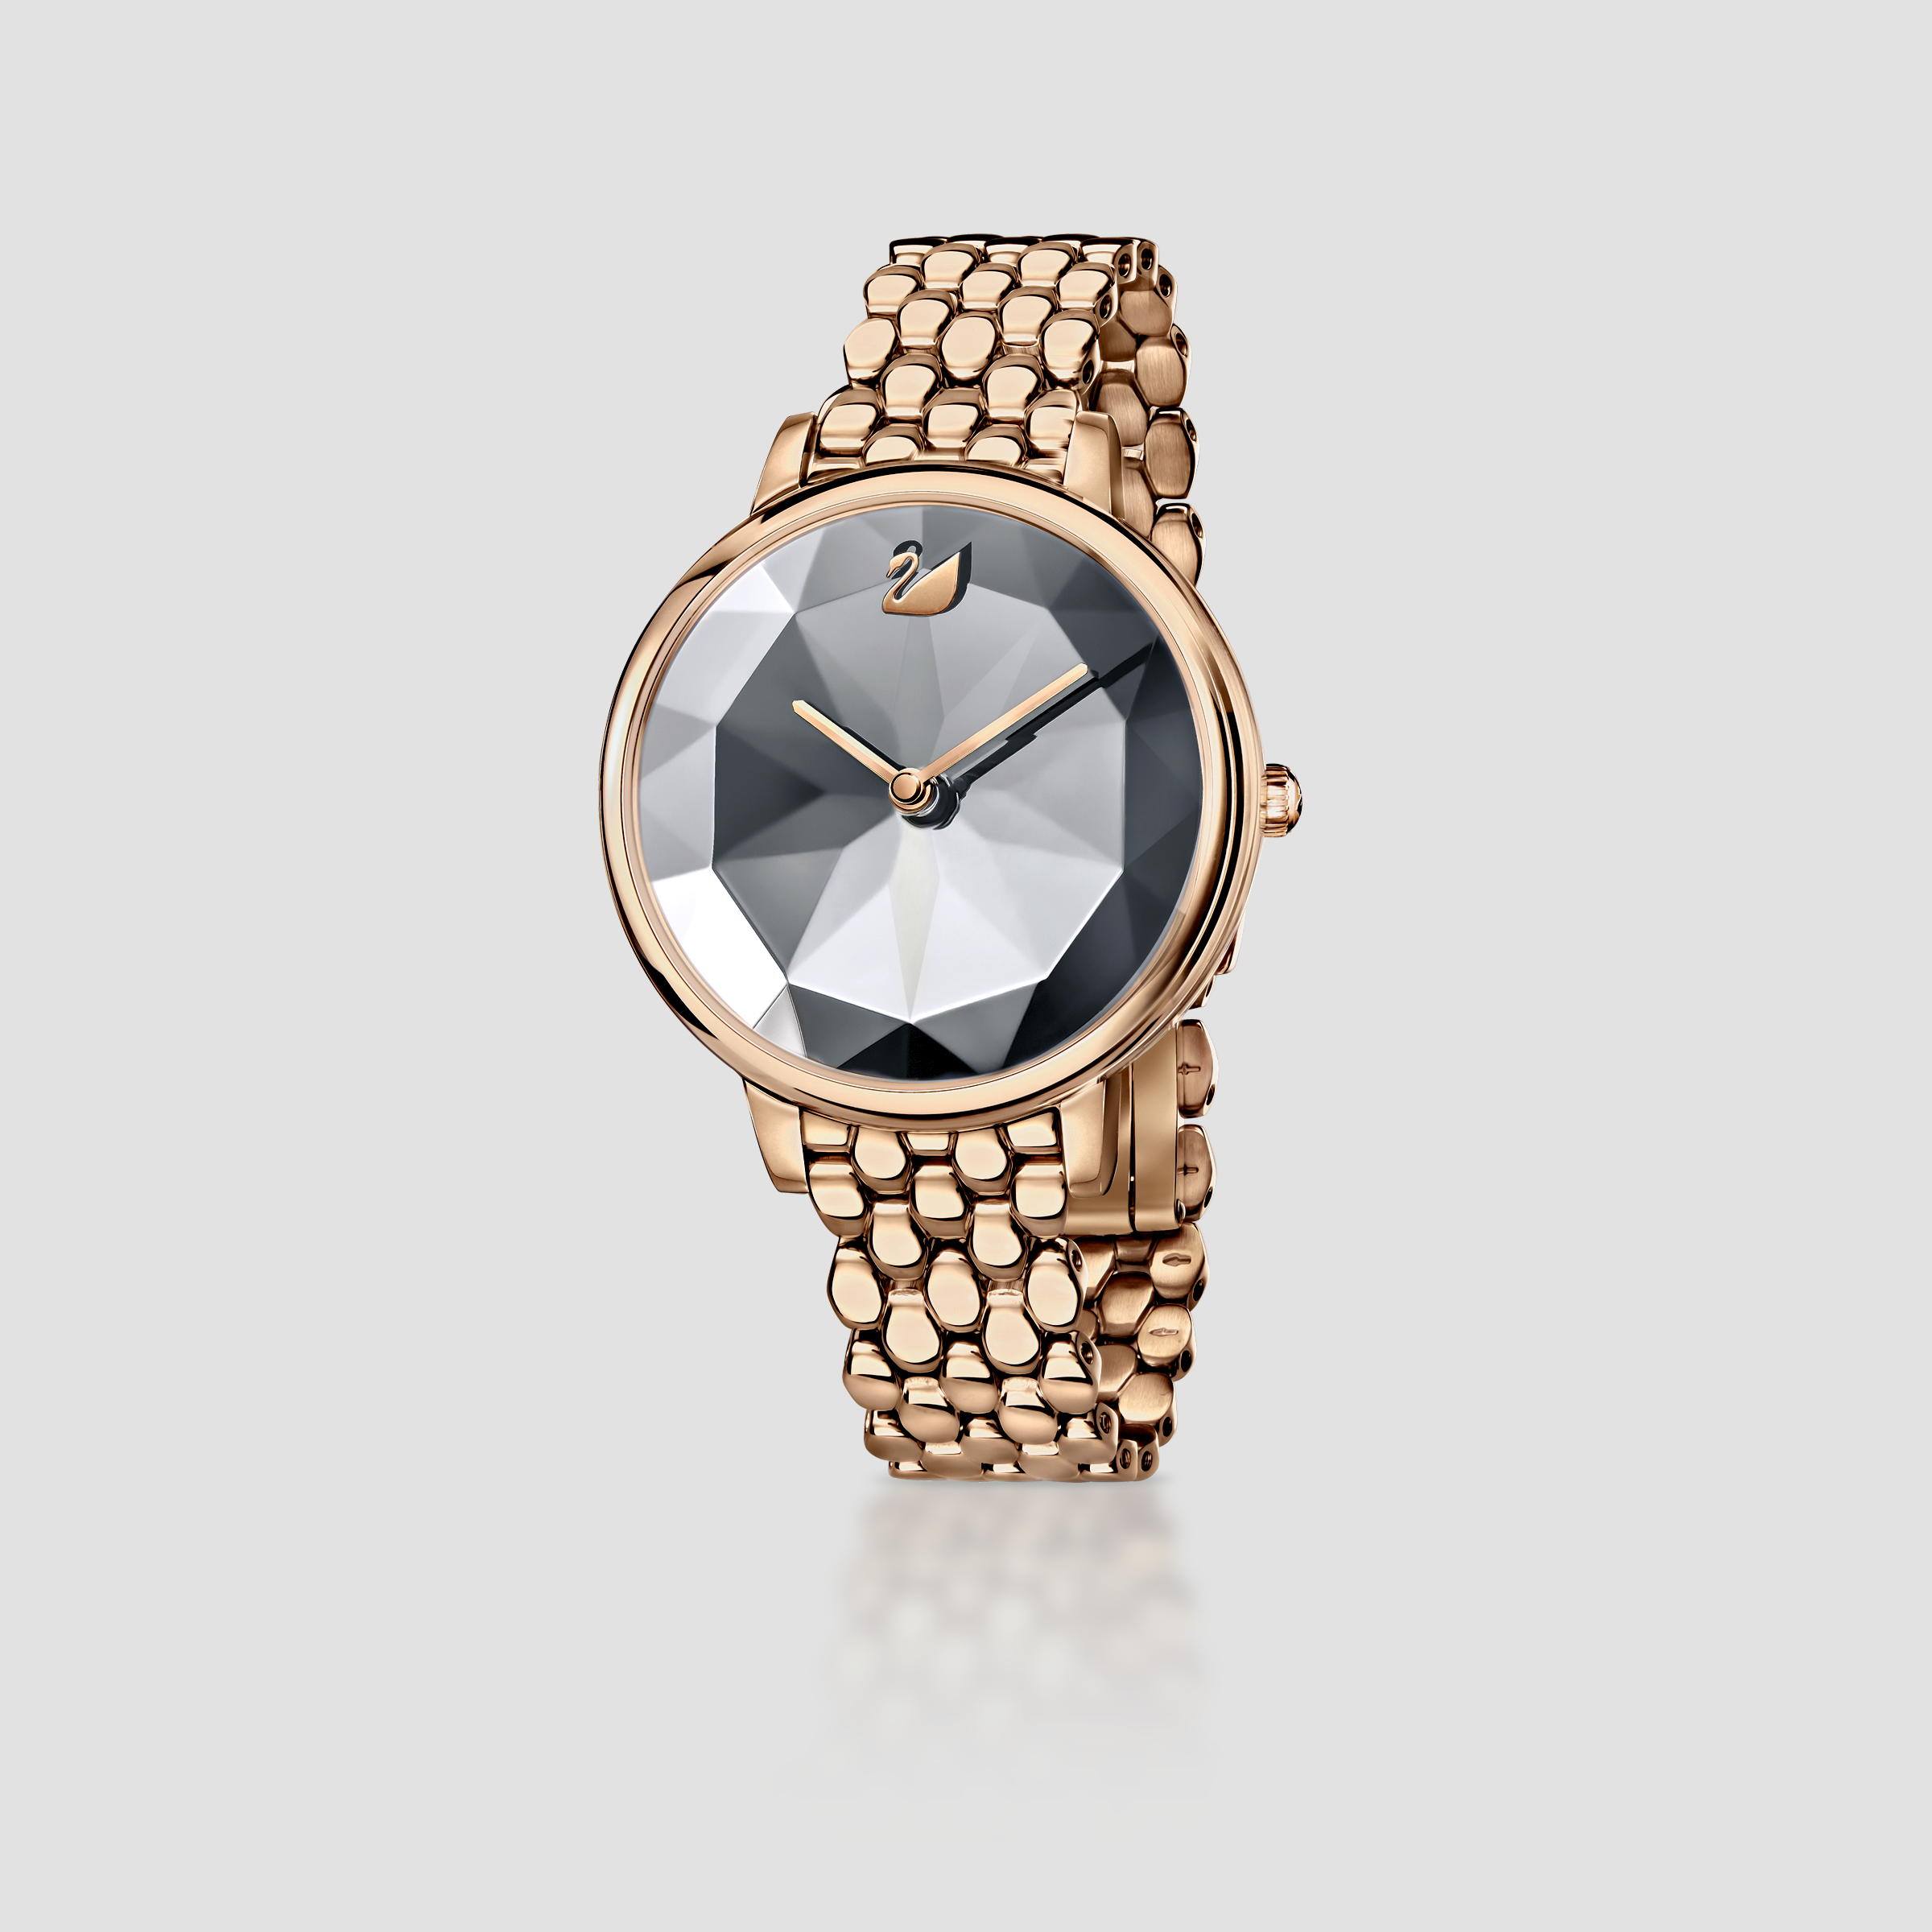 MONTRE CRYSTAL LAKE Swarovski Prix EUR 379.00